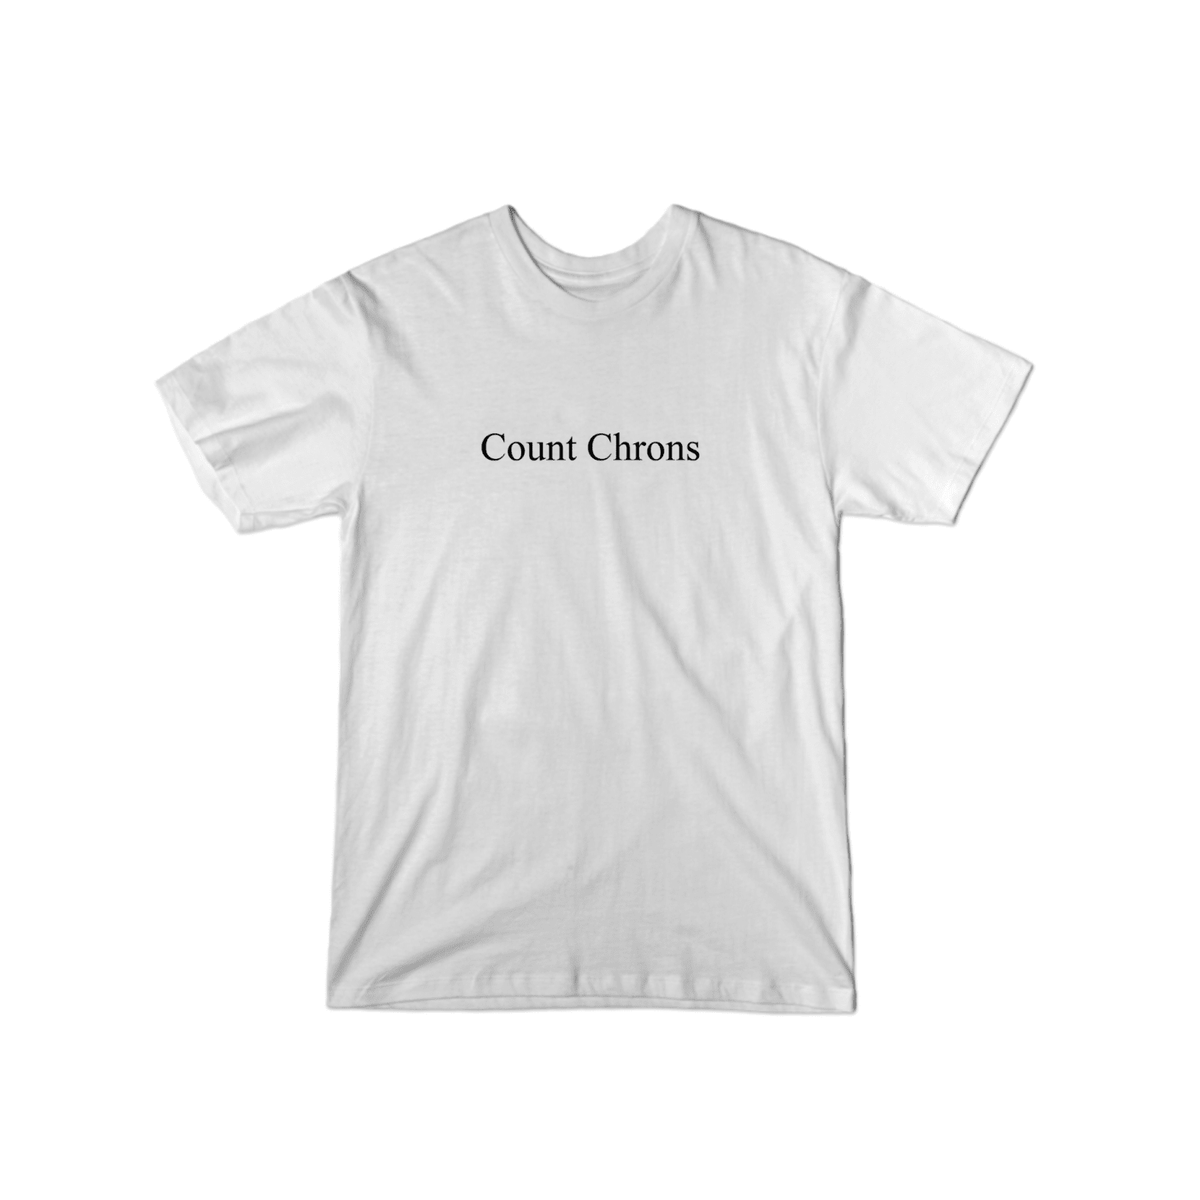 Count Chrons Character T-Shirt